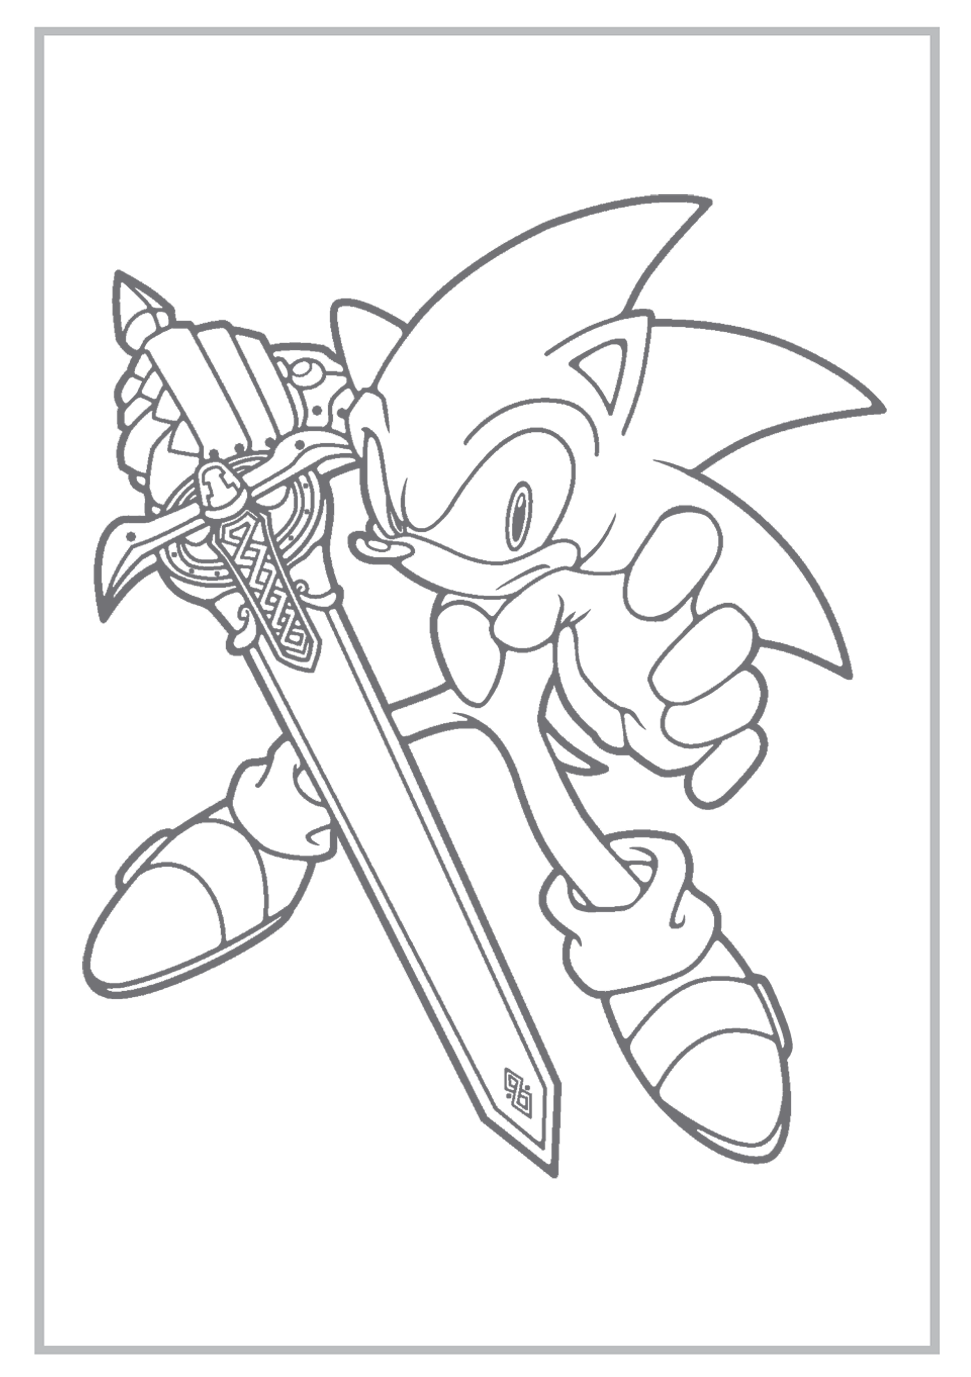 971x1377 Sonic Coloring Pages Sonic The Hedgehog Coloring Pages Free